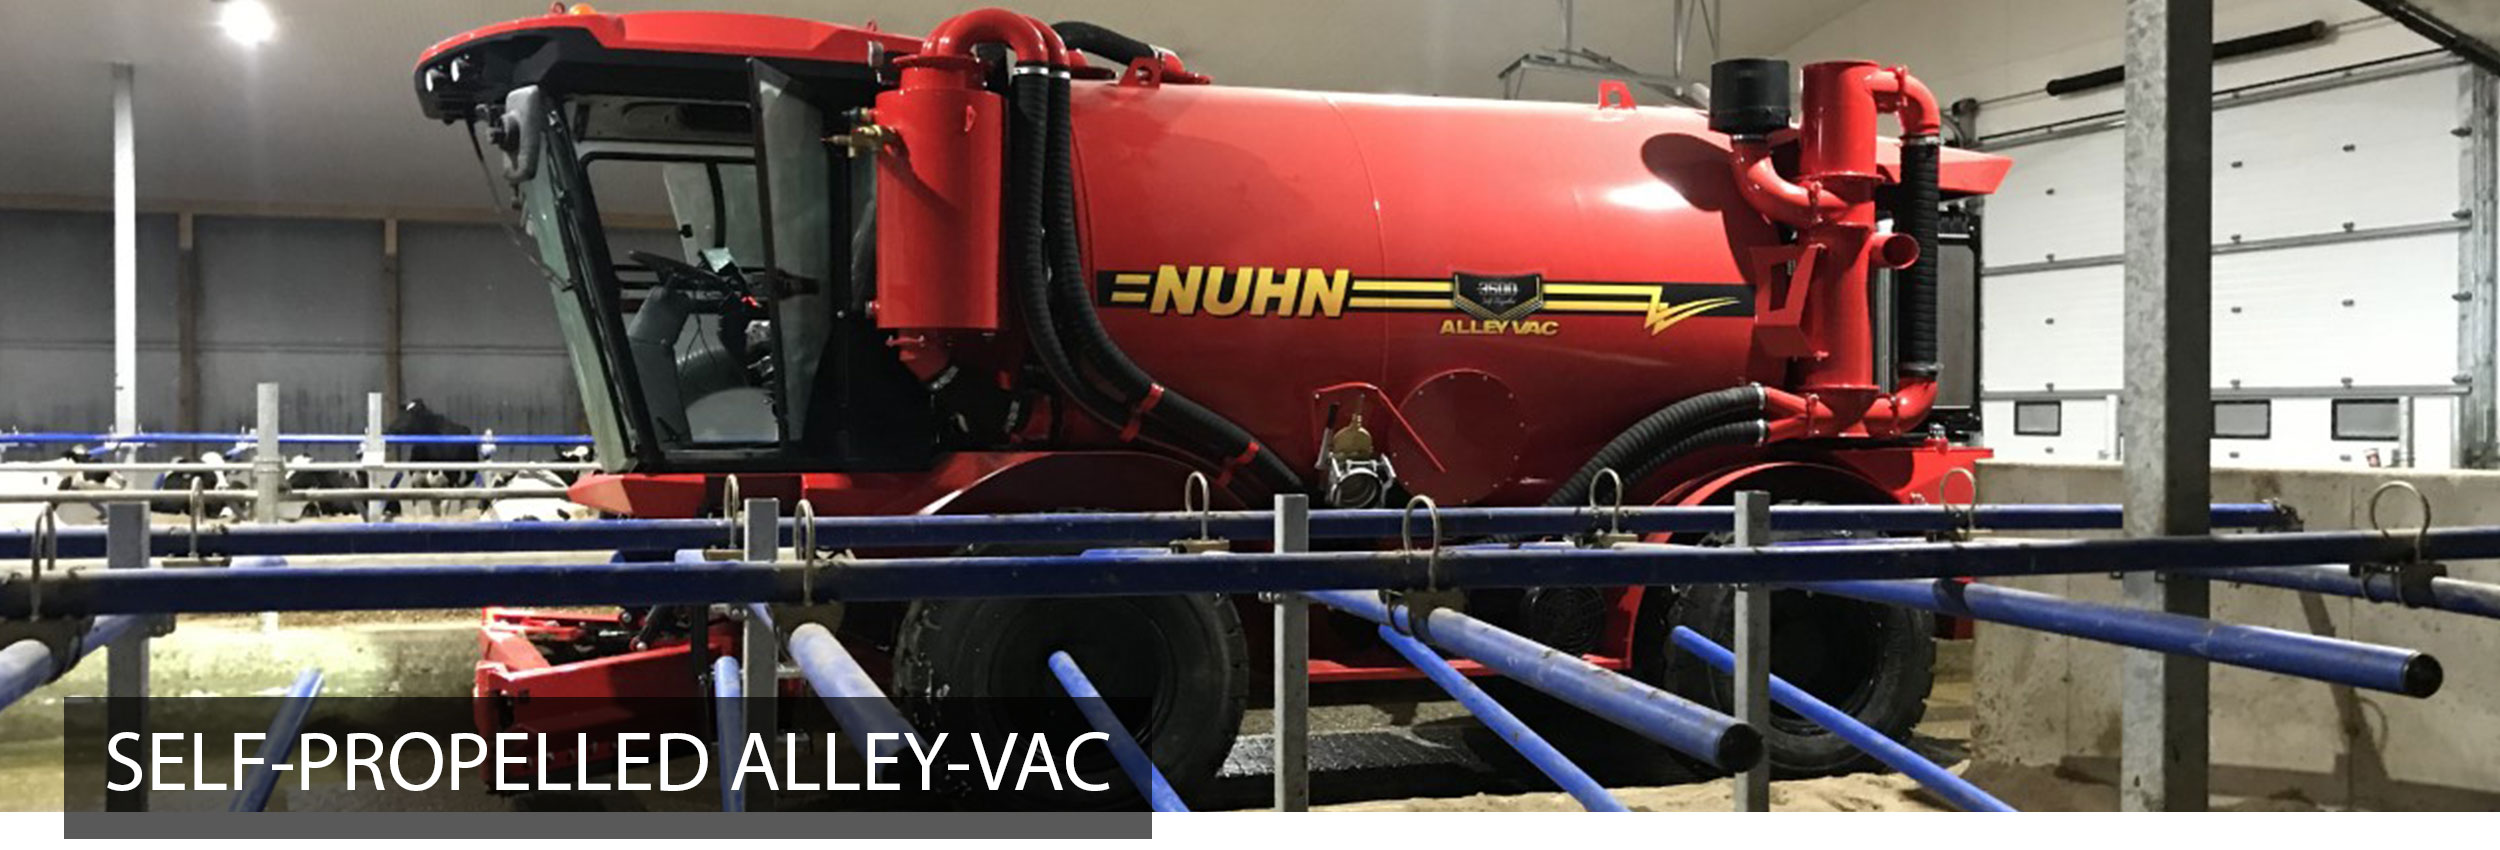 Self Propelled Alley-Vac